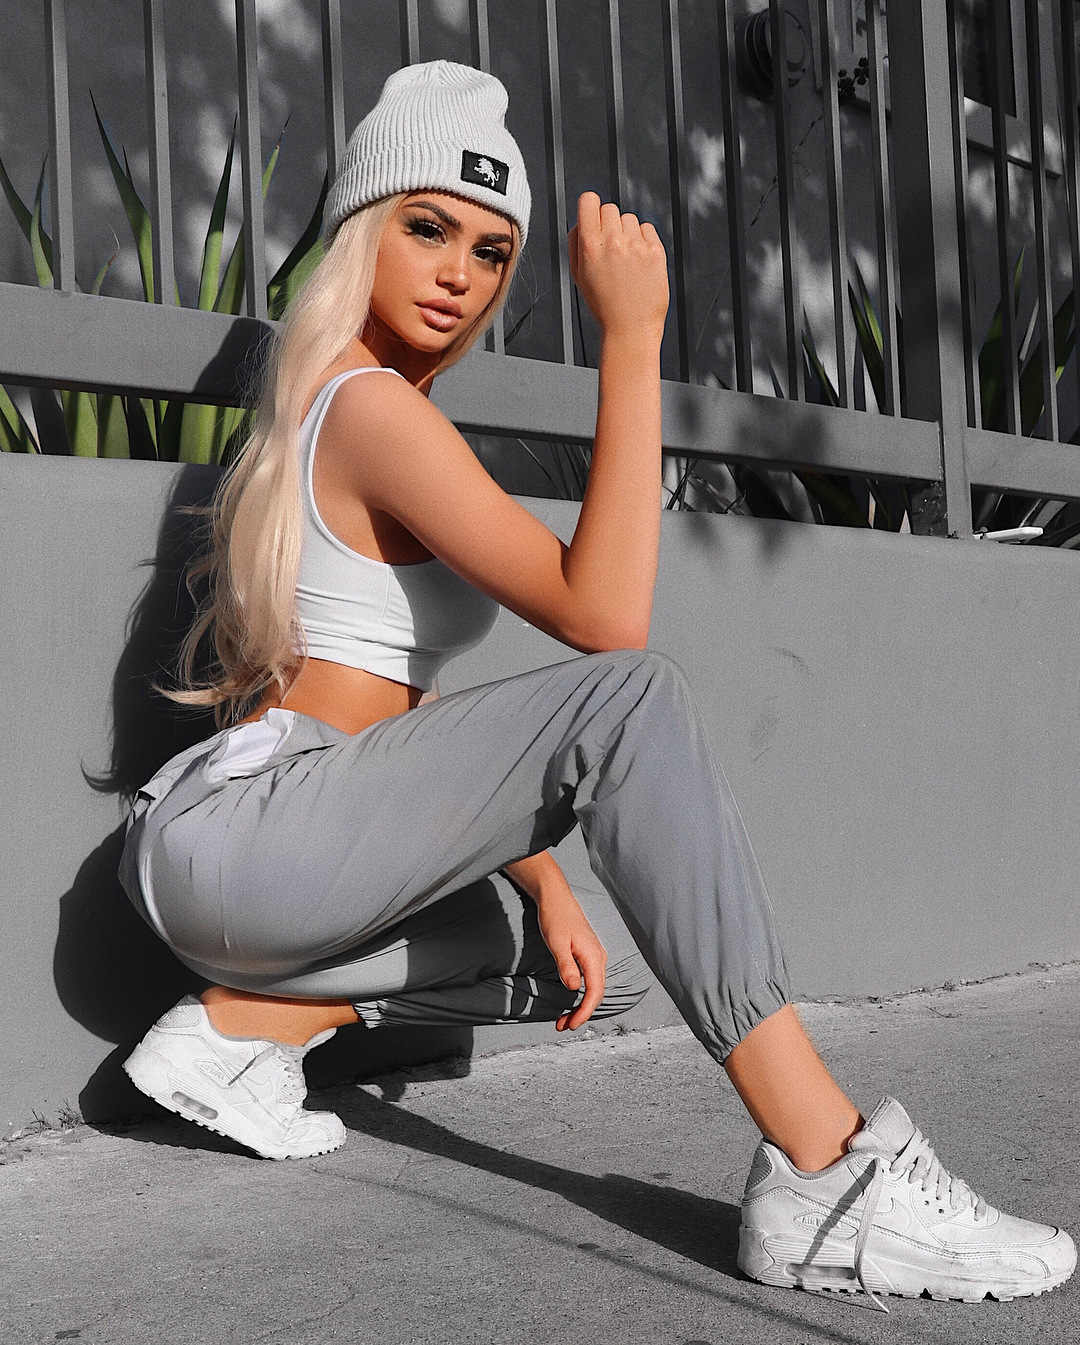 New Flash reflective jogger pants 2019 autumn winter women casual gray solid streetwear trousers